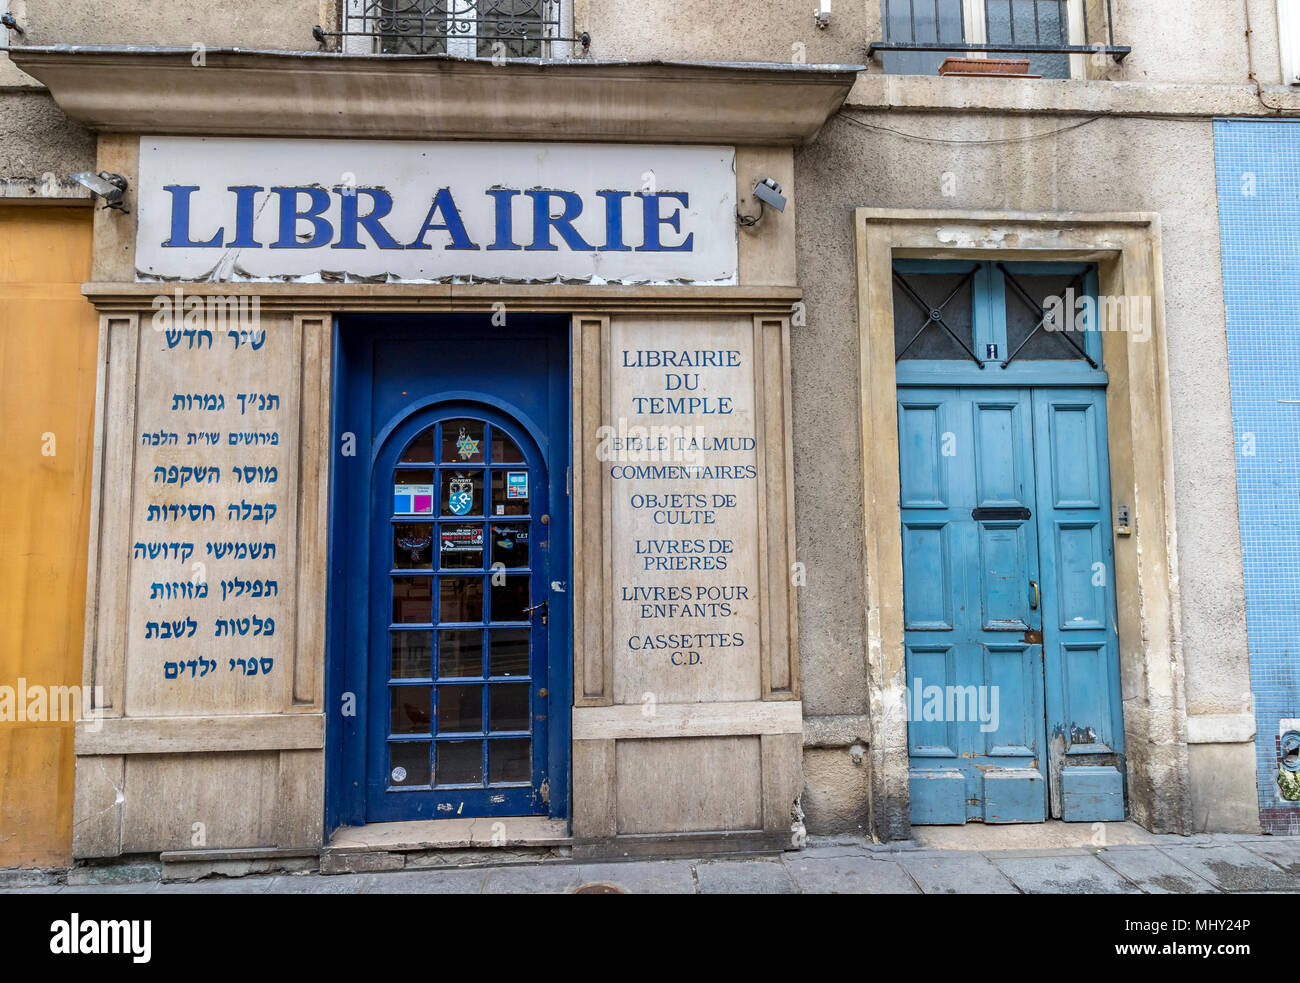 Librairie du Temple a Jewish bookshop, Rue des Hospitalières Saint-Gervais ,Paris ,France Stock Photo